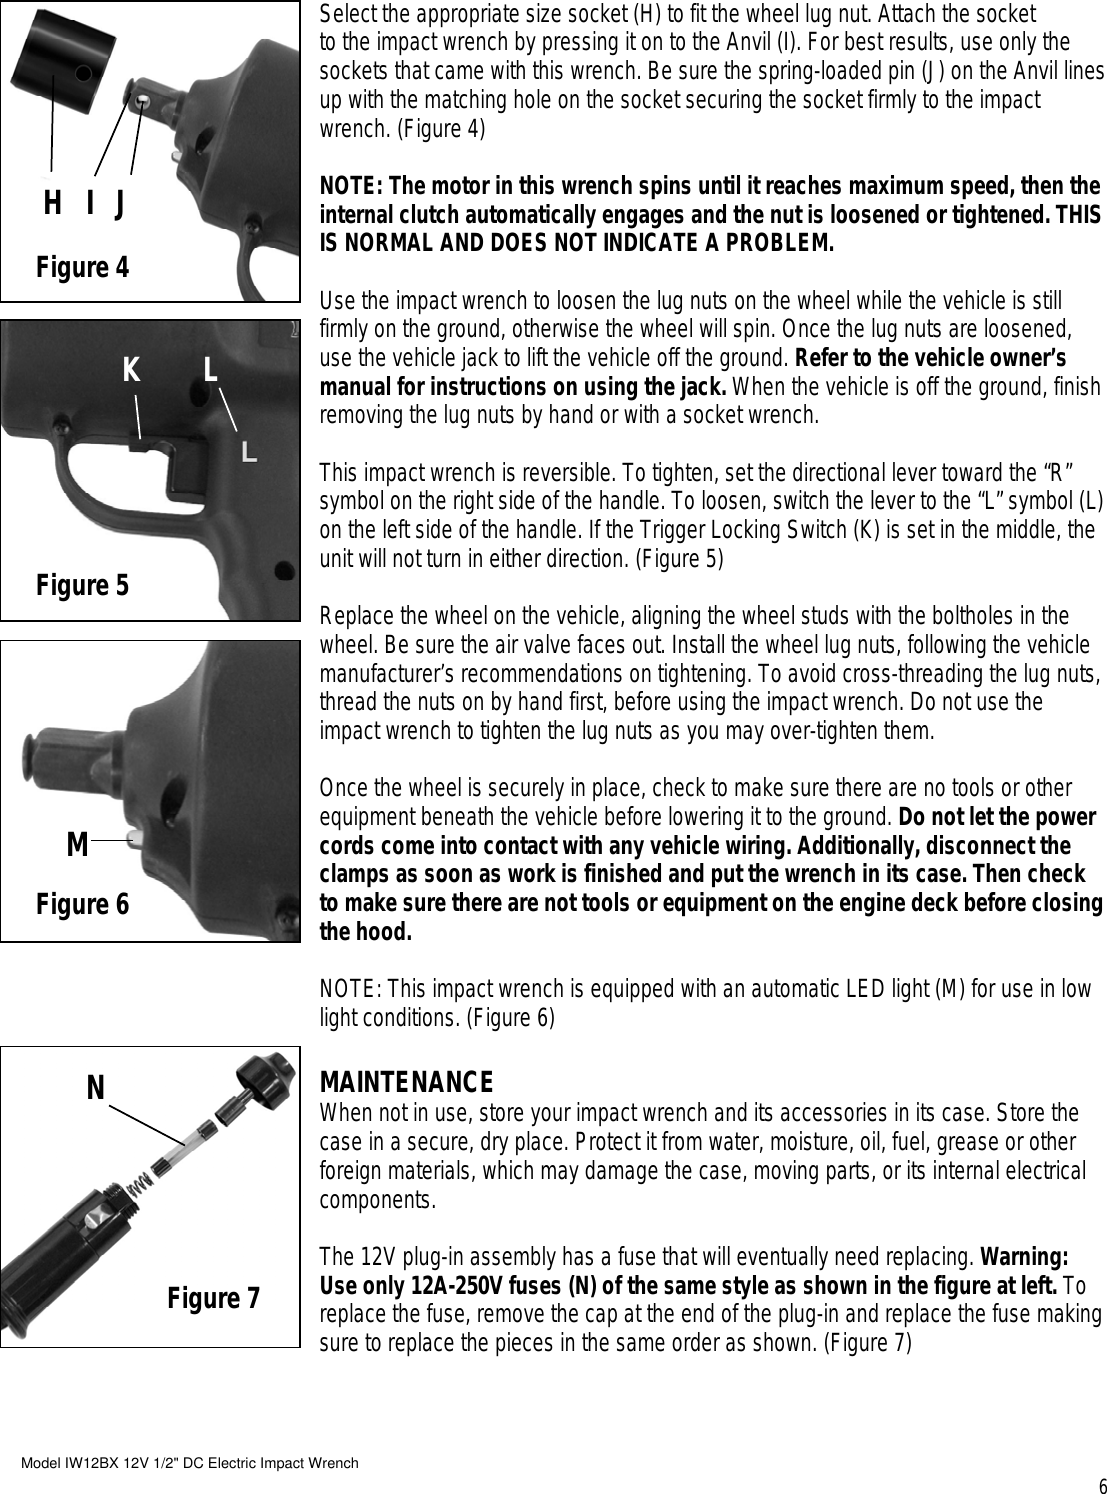 Buffalo tools iw12bx 12v users manual page 6 of buffalo tools buffalo tools iw12bx 12v users publicscrutiny Gallery